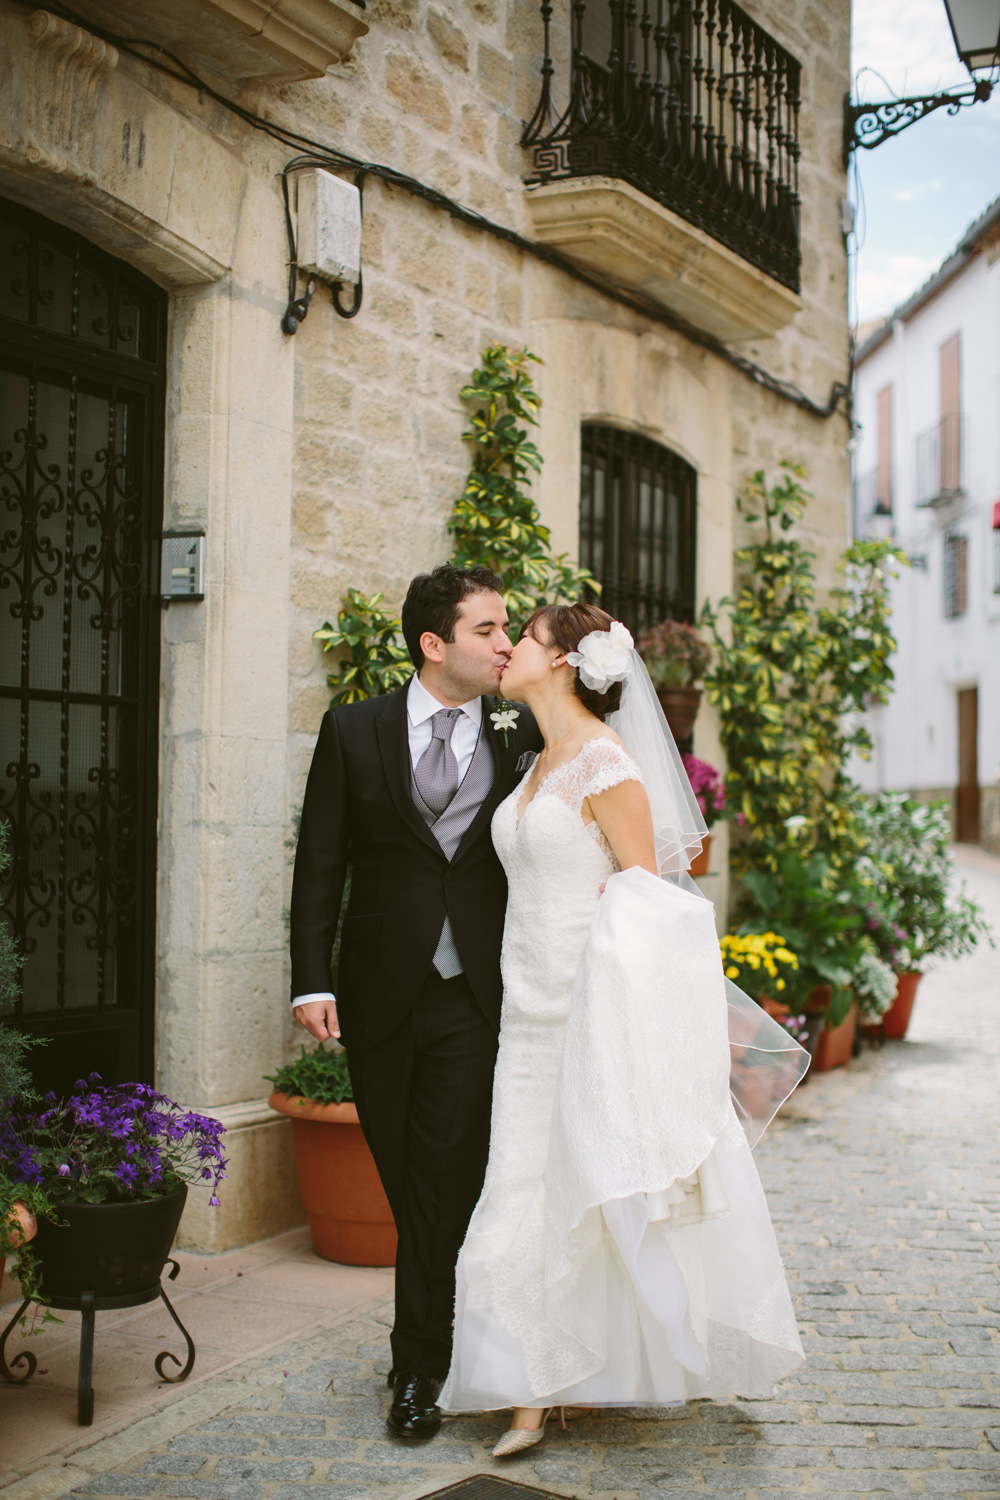 melissa_sung_photography_destination_wedding_spain_andalusia_olive_groves040.jpg